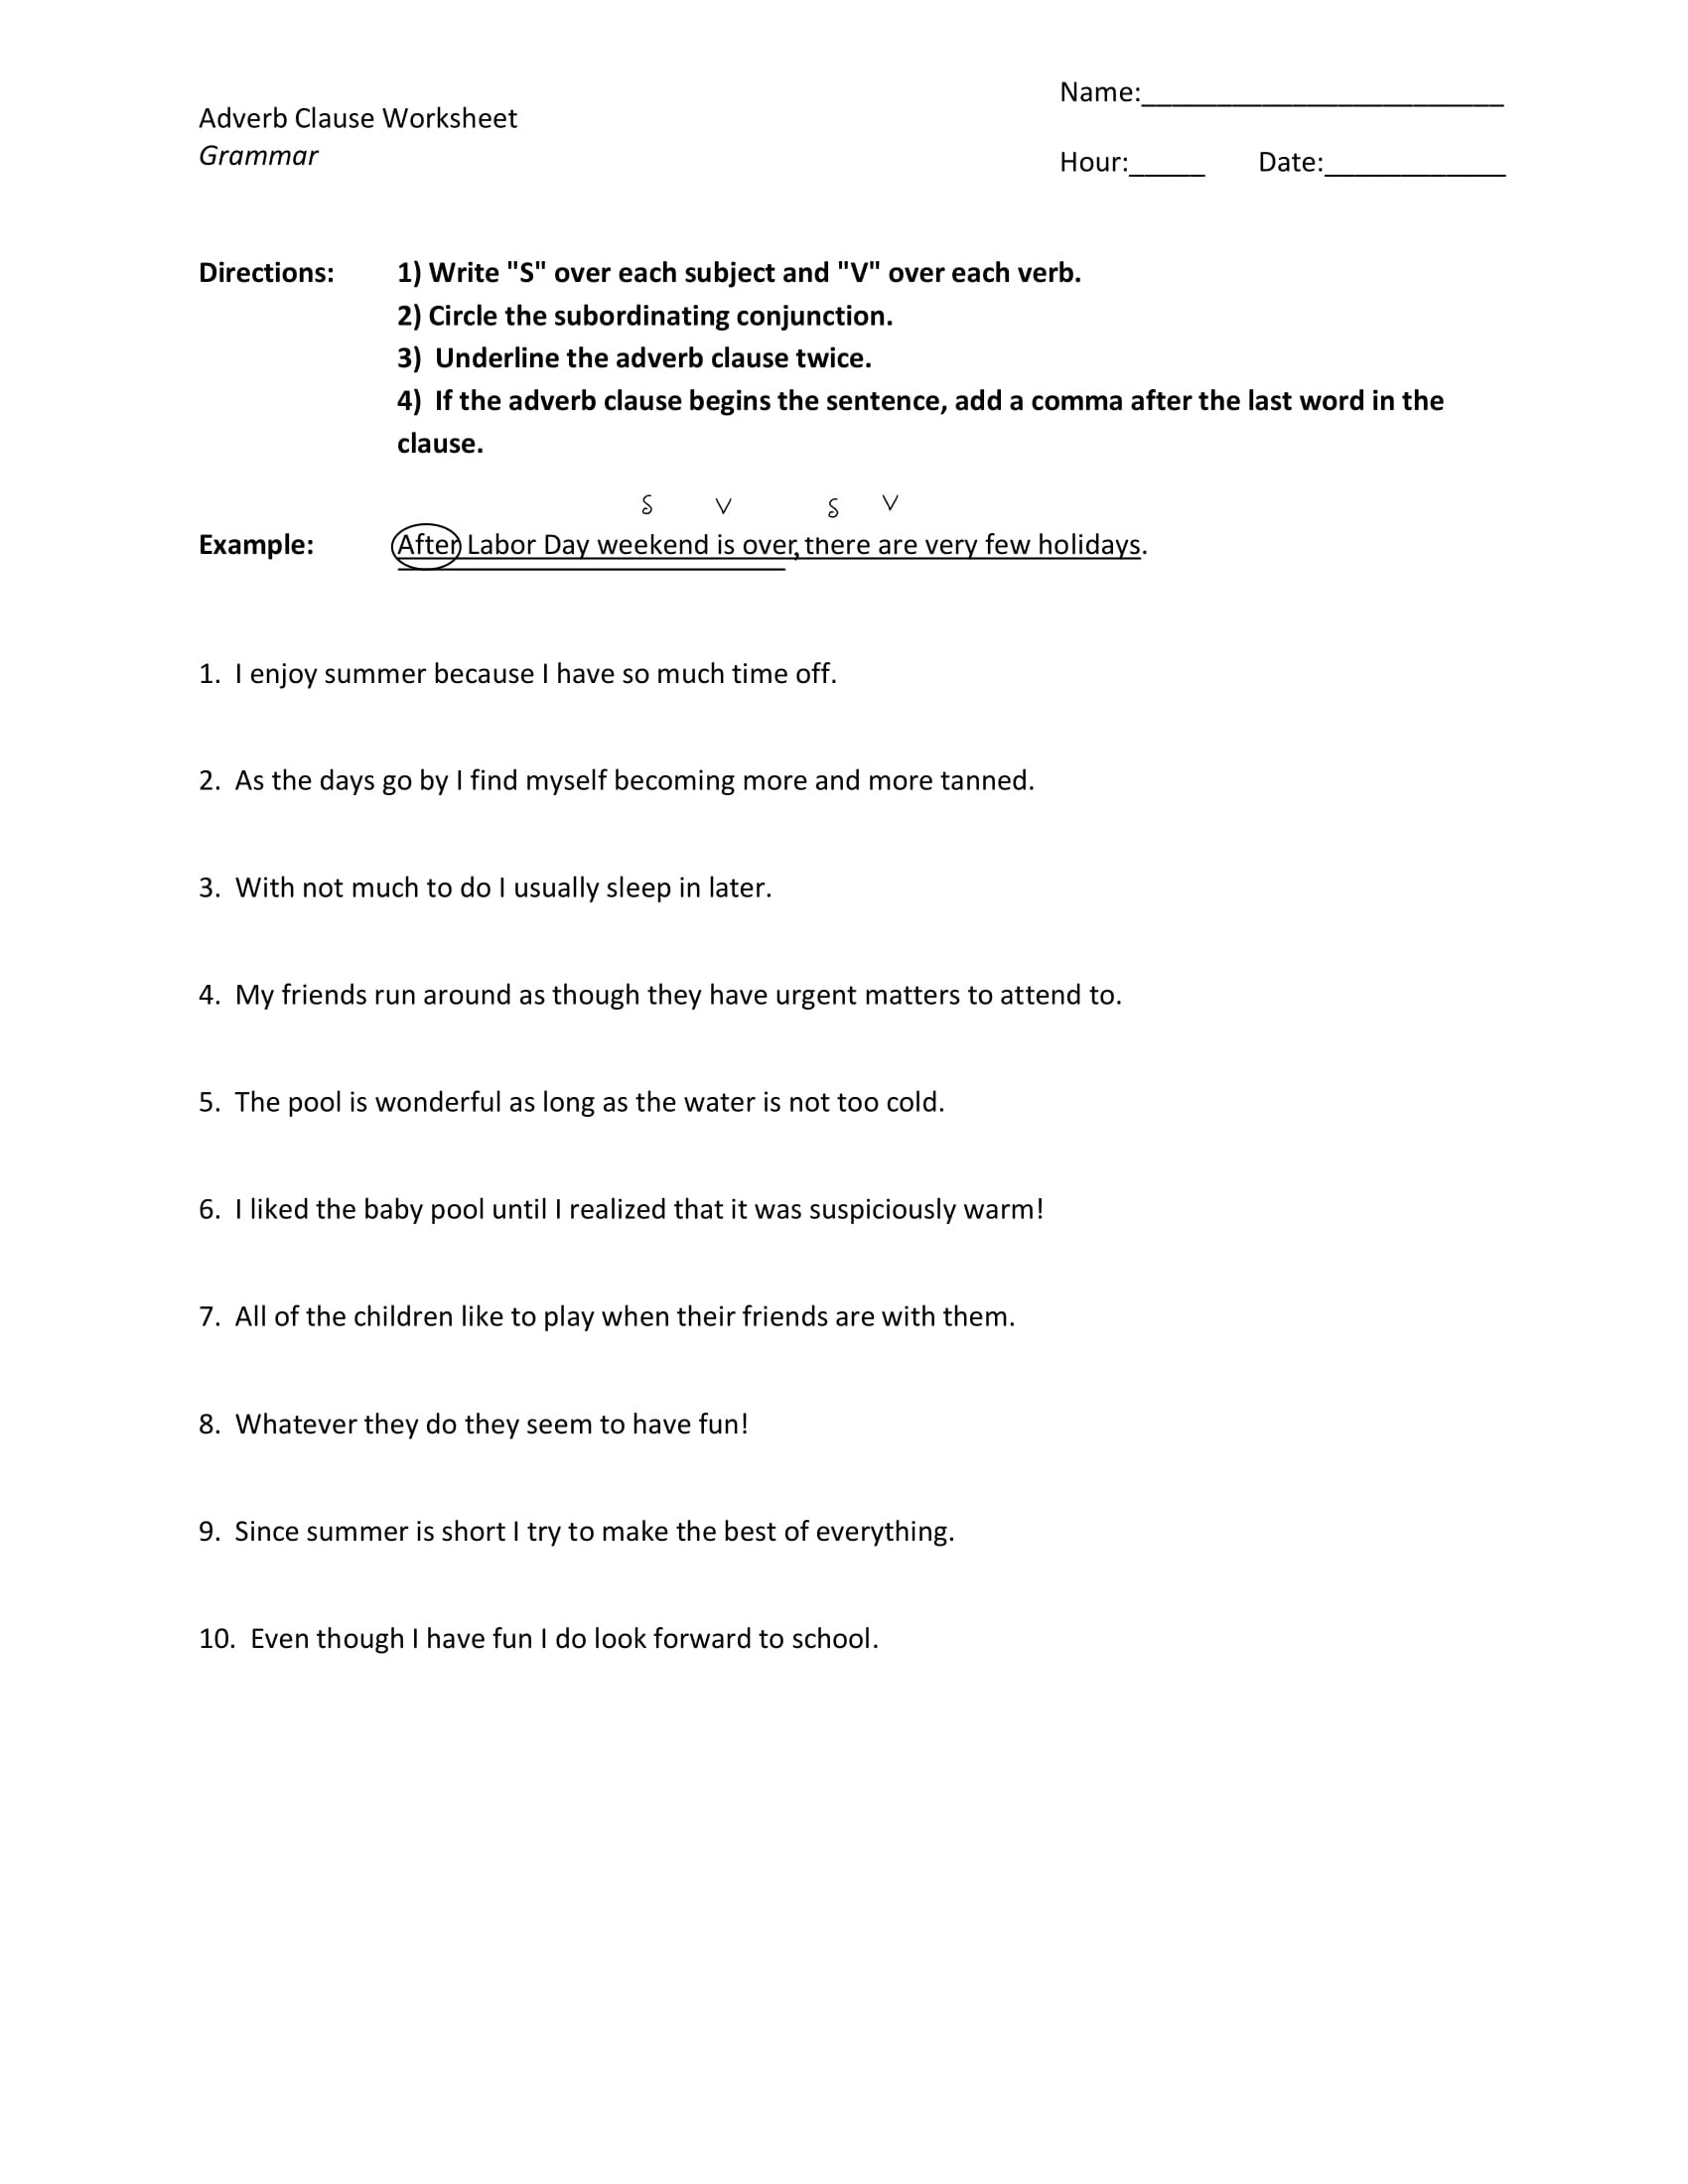 Adverb Clause Worksheet Example2